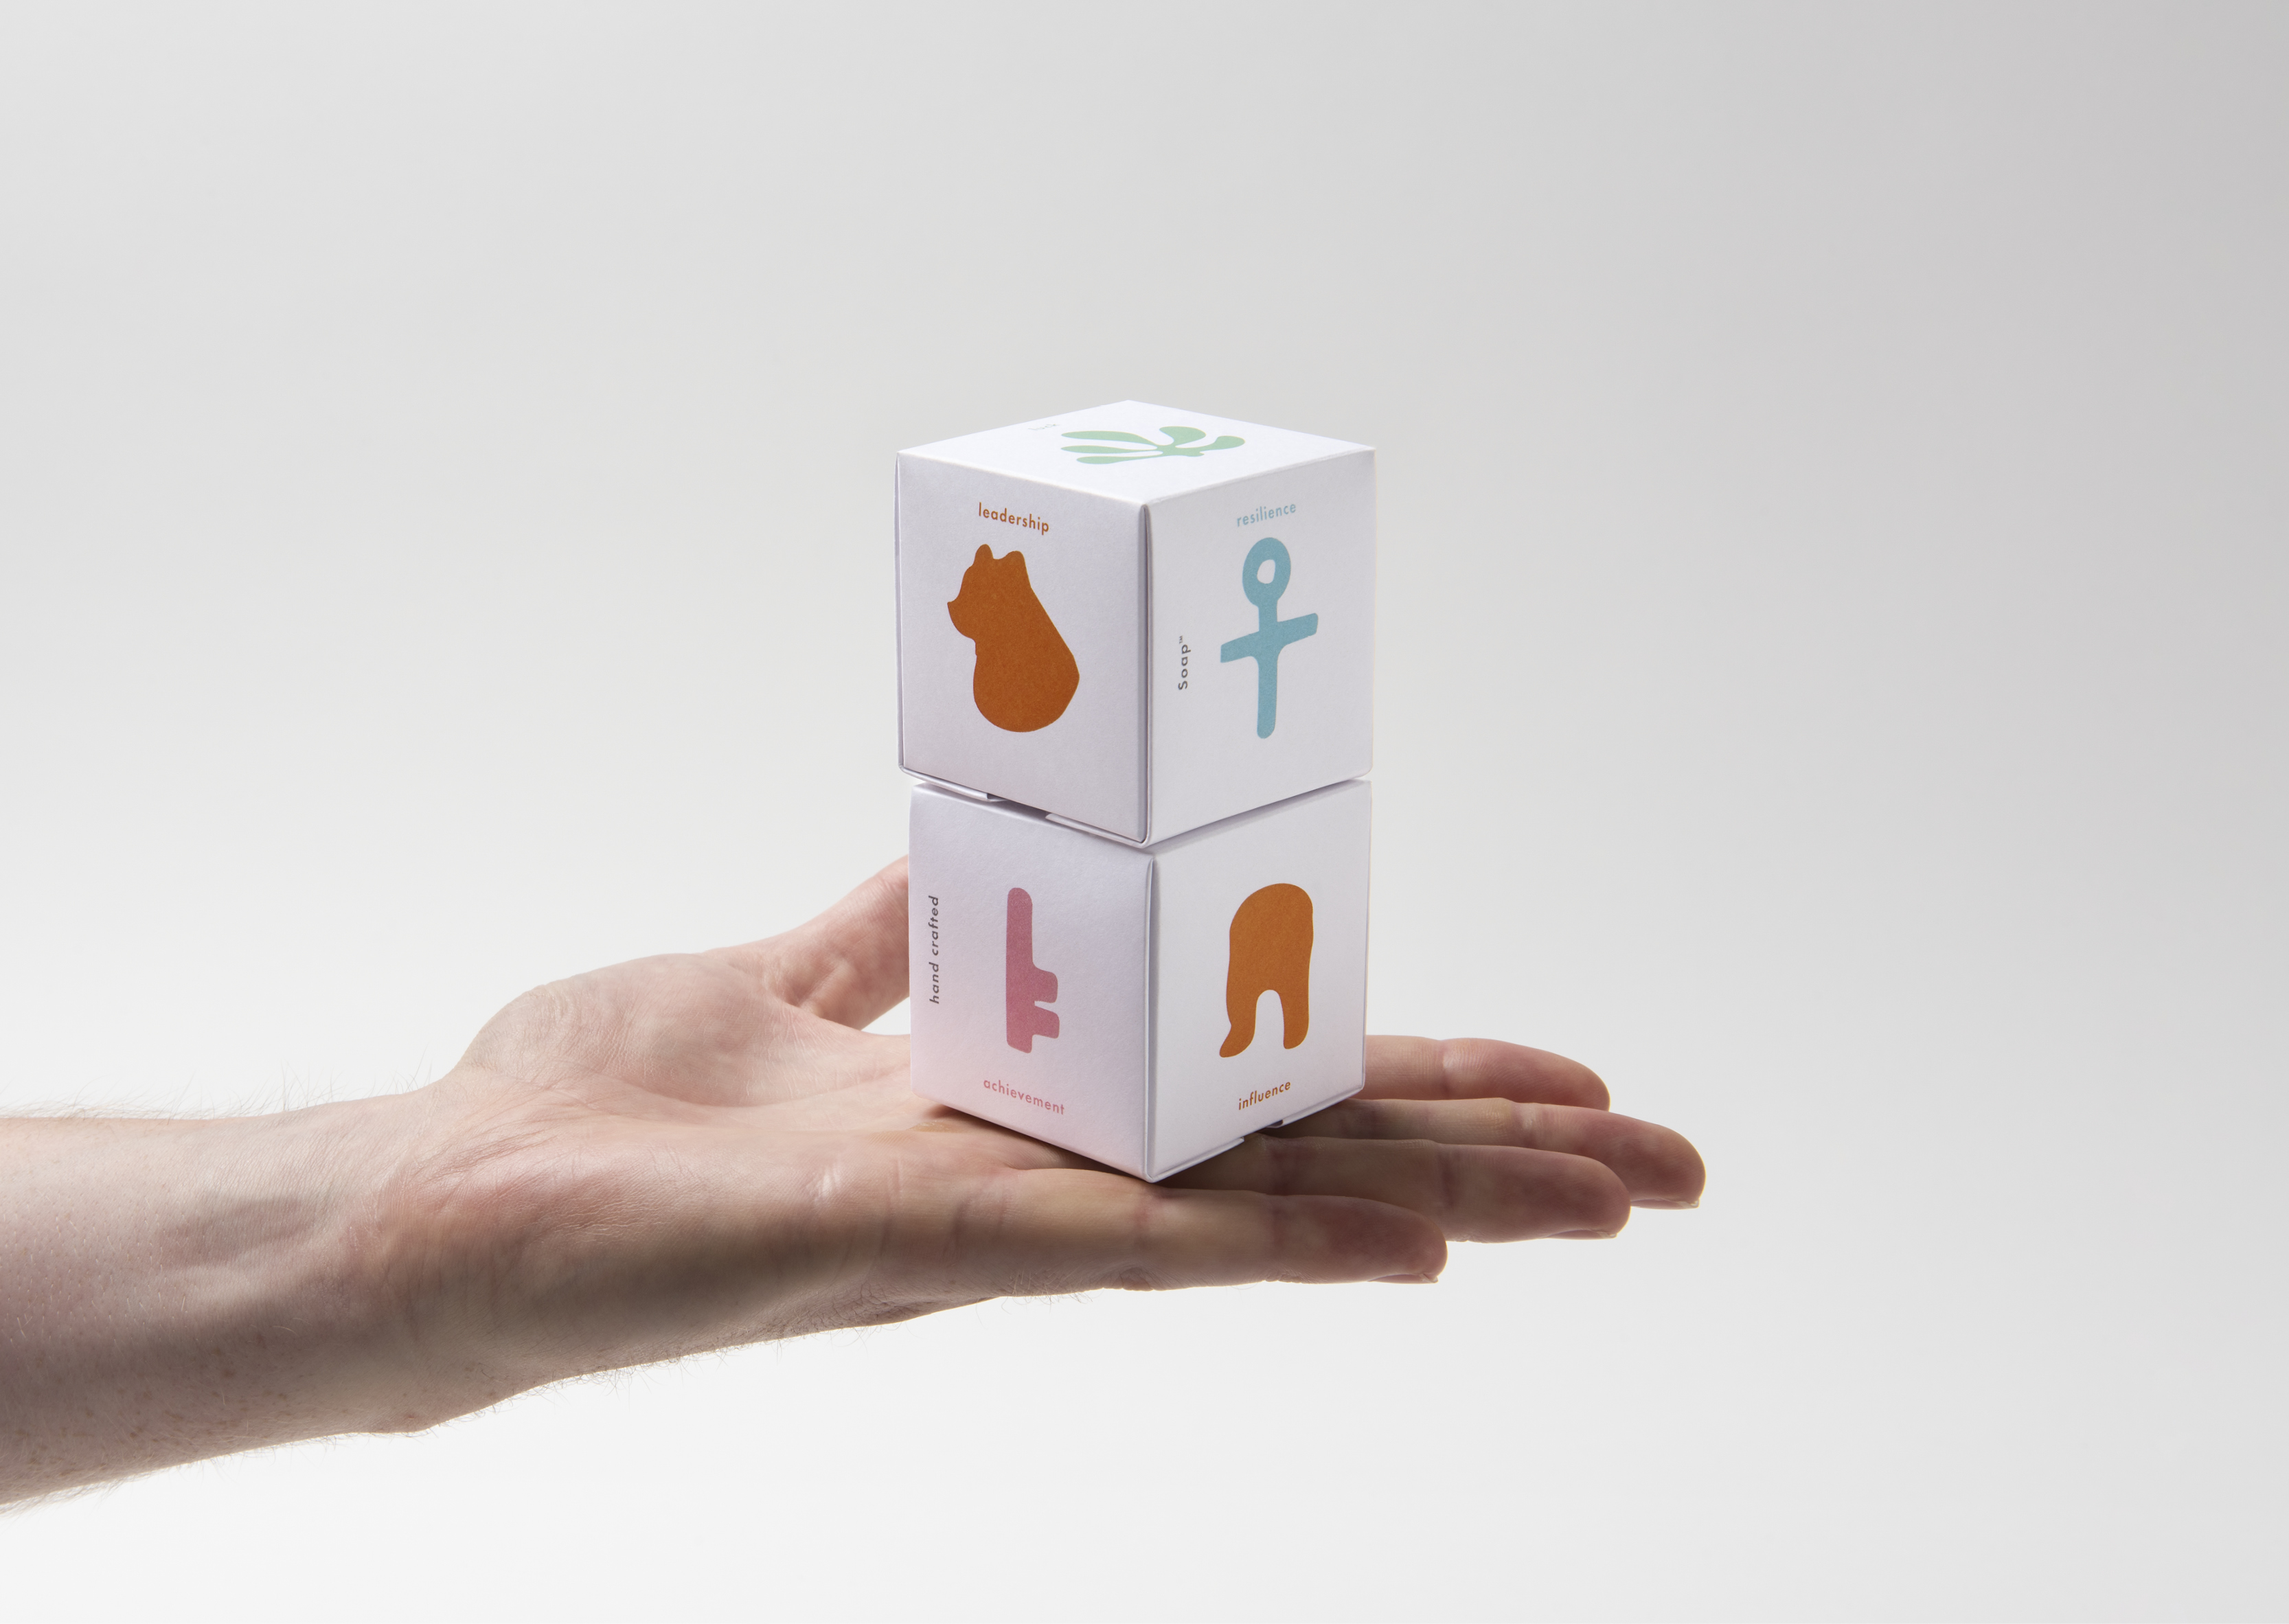 Two stack of beautifully illustrated soap packaging in palm of hand